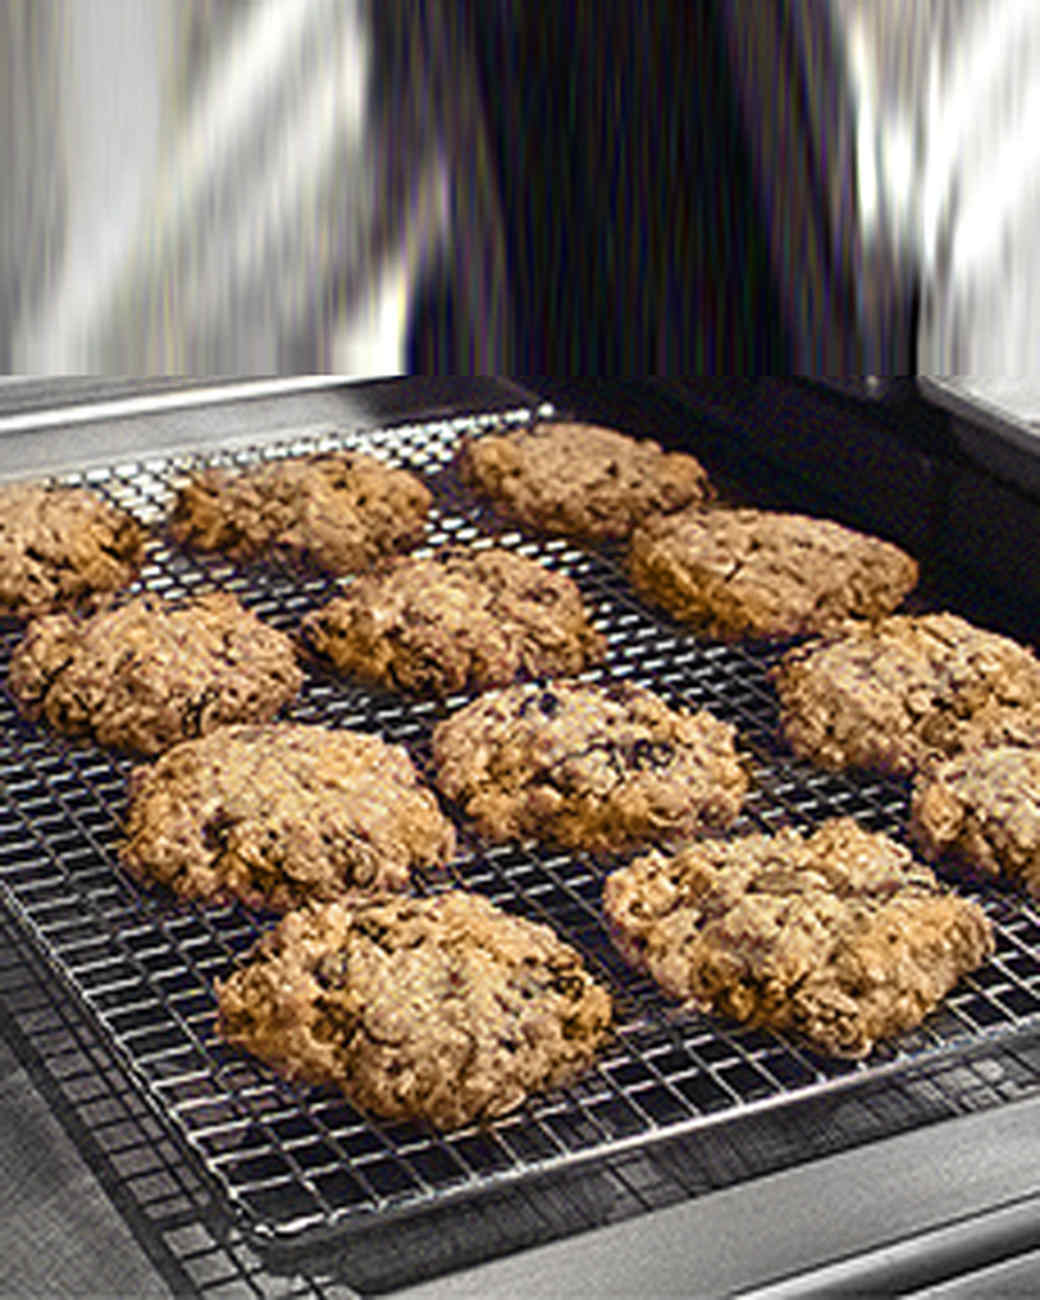 superior Kitchen Sink Cookies Recipe #5: Martha Stewart